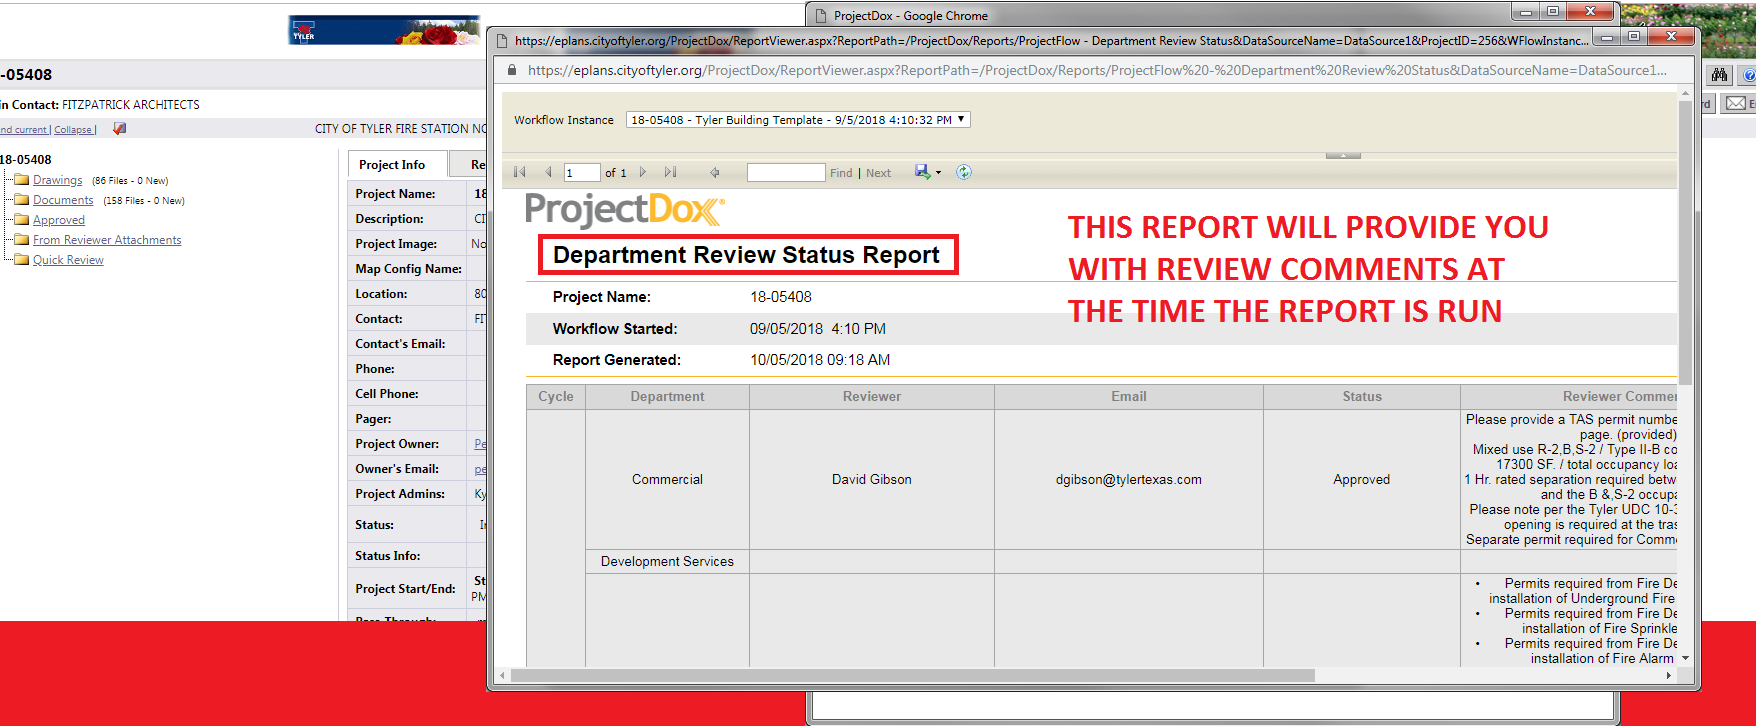 This report will provide you with review comments at the time the report is run